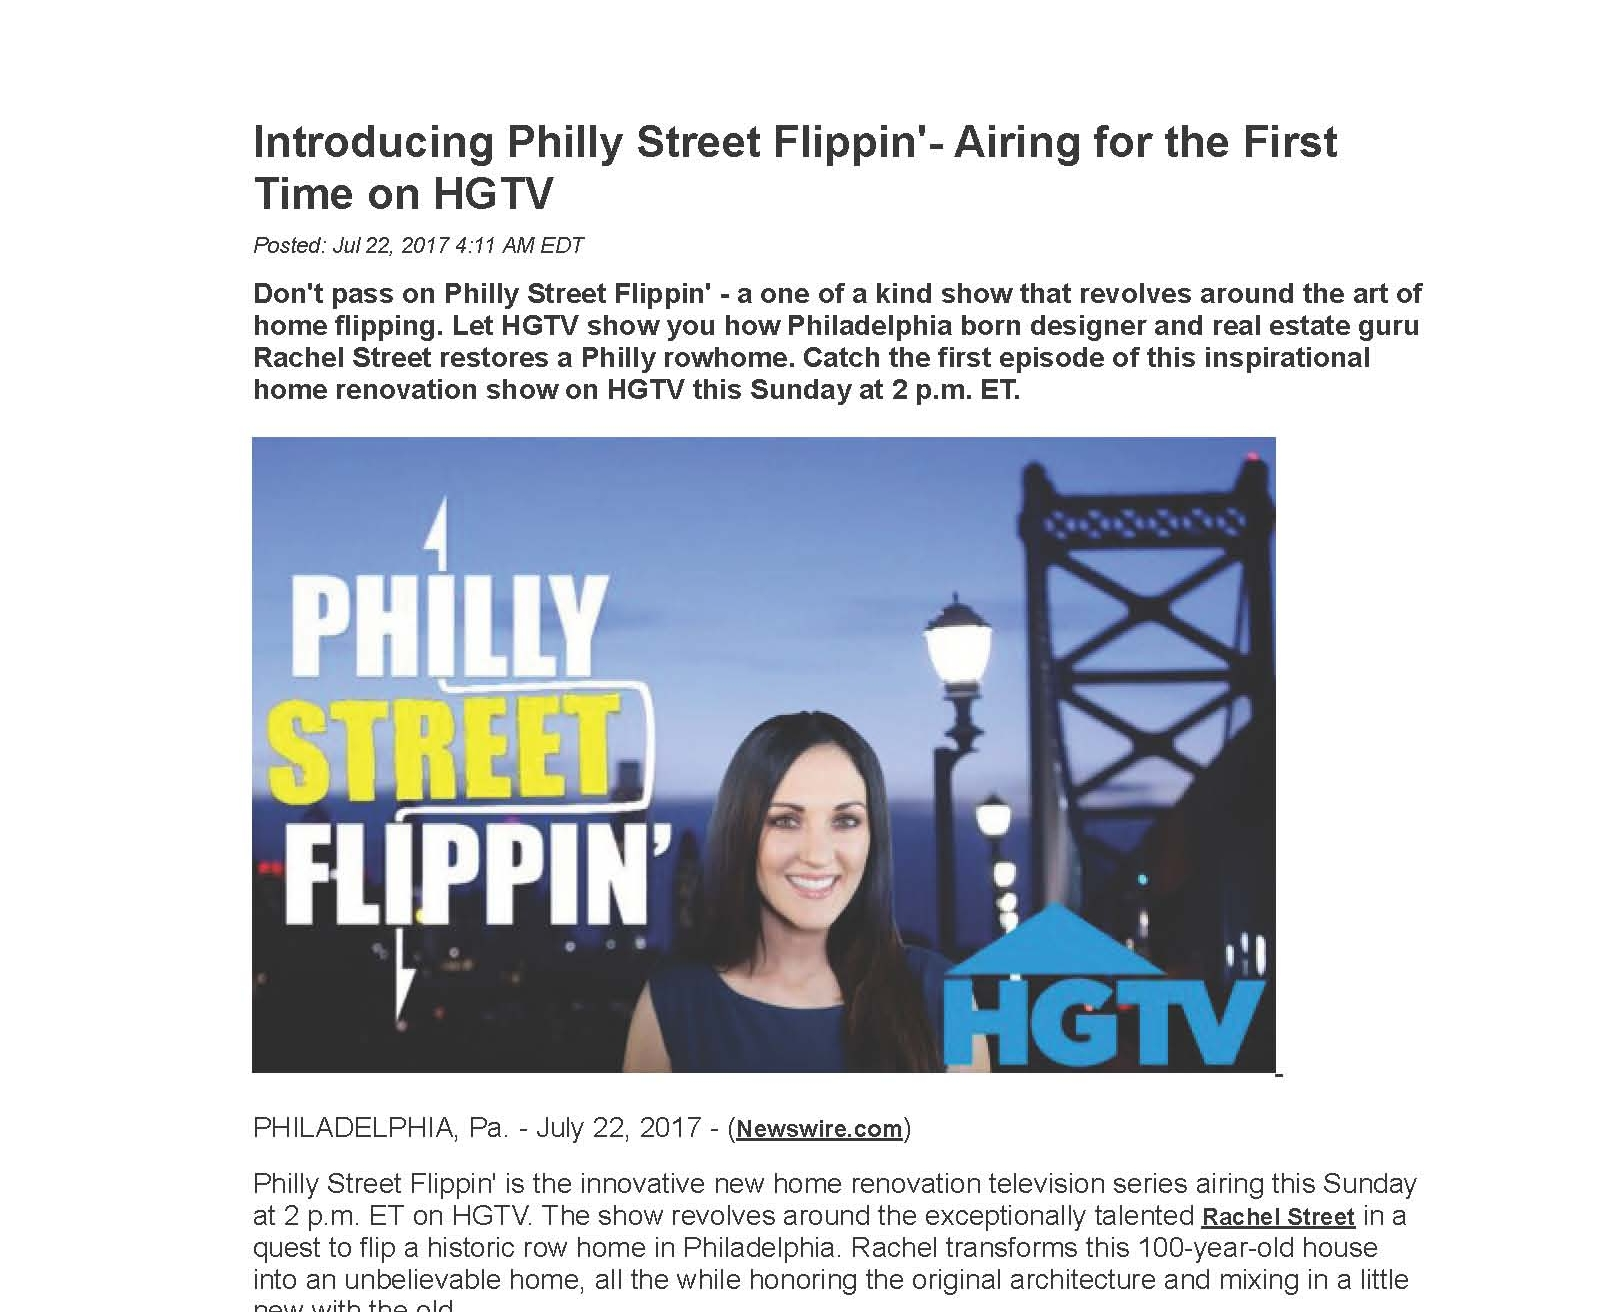 Introducing Philly Street Flippin'- Airing for the First Time on - KTEN.jpg